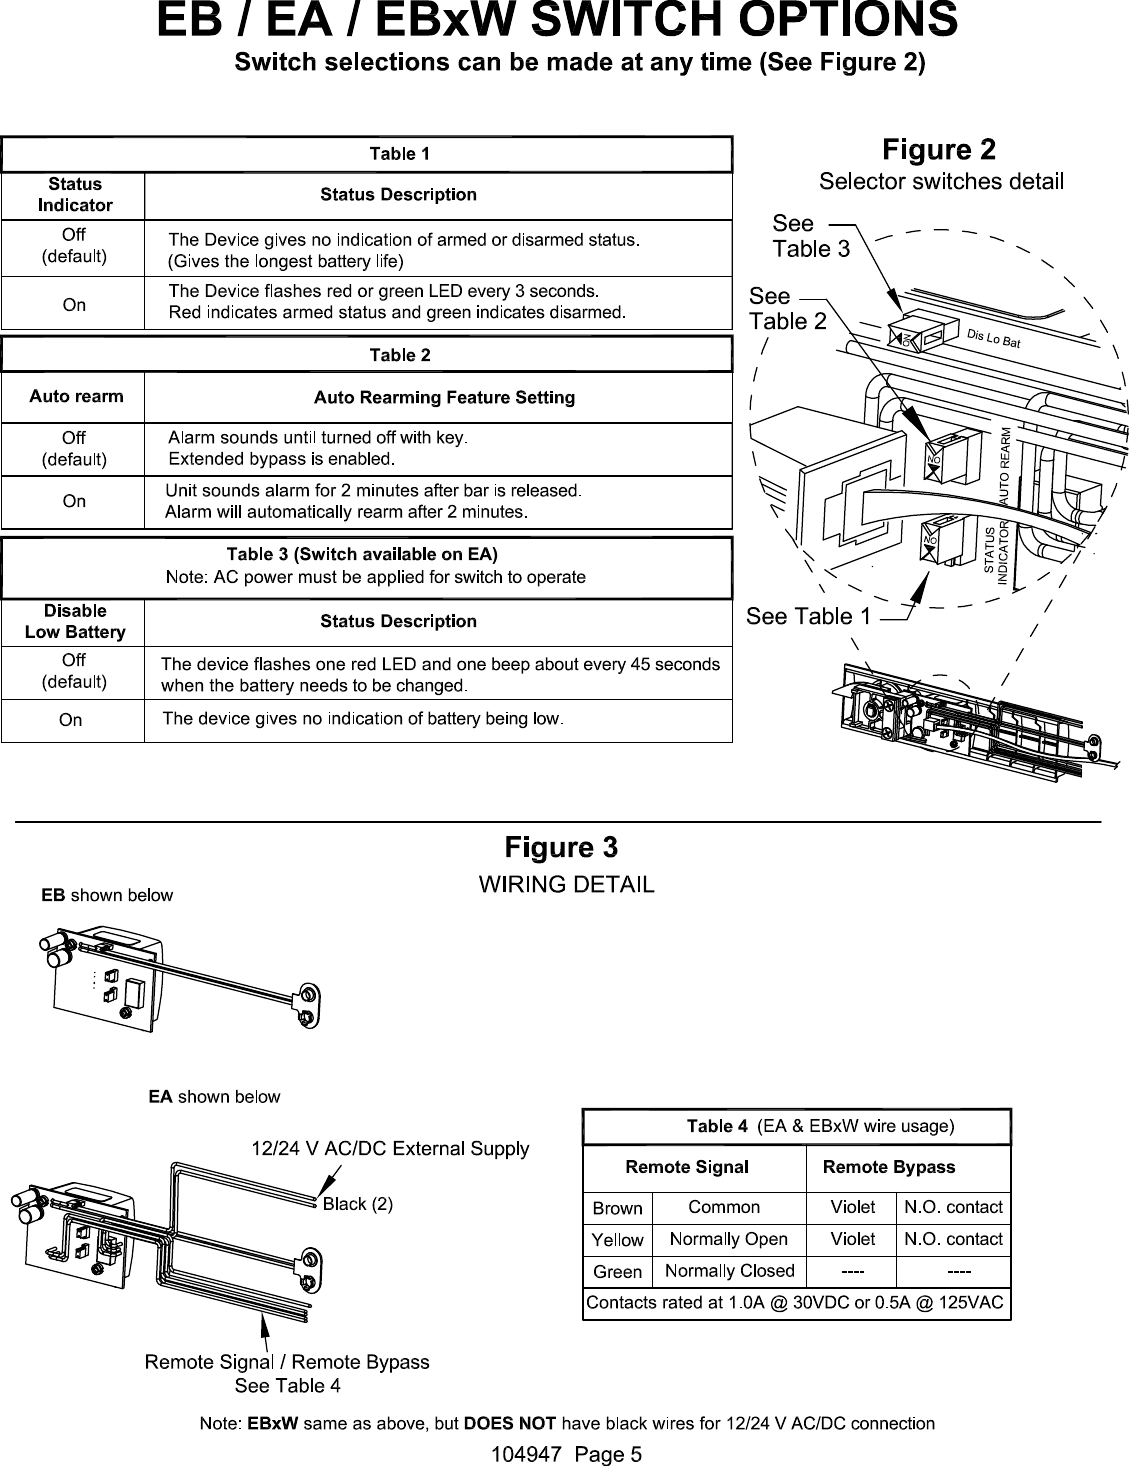 Detex C Electrical Instructions For Value Series Eb Ea Ex And Ebx Wiring Diagrams Page 5 Of 7